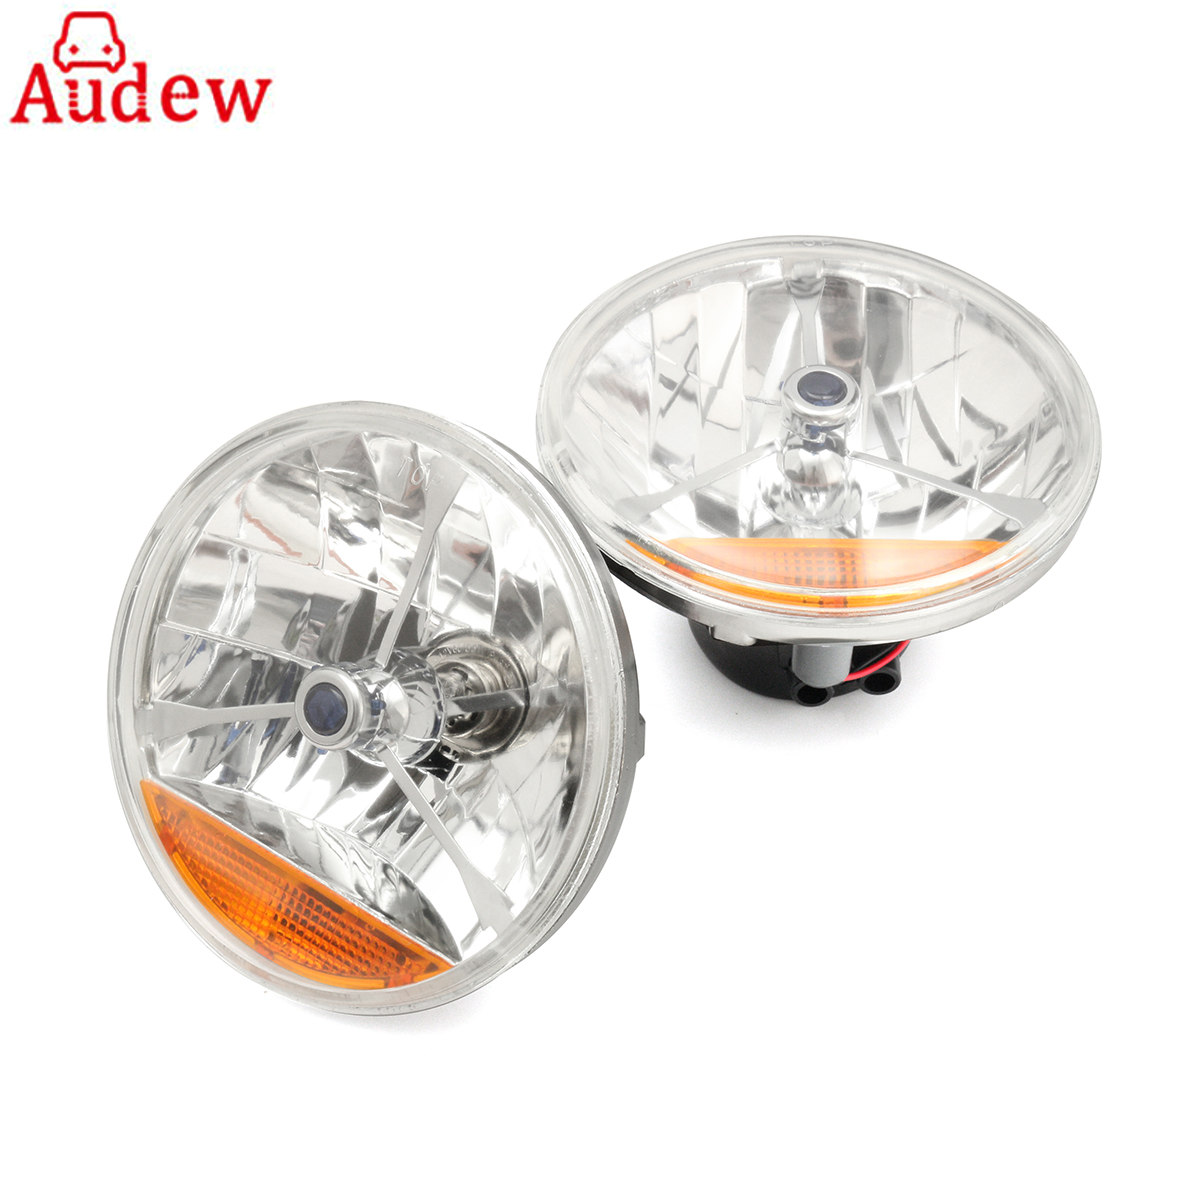 2Pcs 7 Inch H4 LED Car Headlight Fog Light  For Chevy/Ford Motorcycle  Daytime Running Lights Truck Light Led Side Turn Signal byblos bj6426 byblos